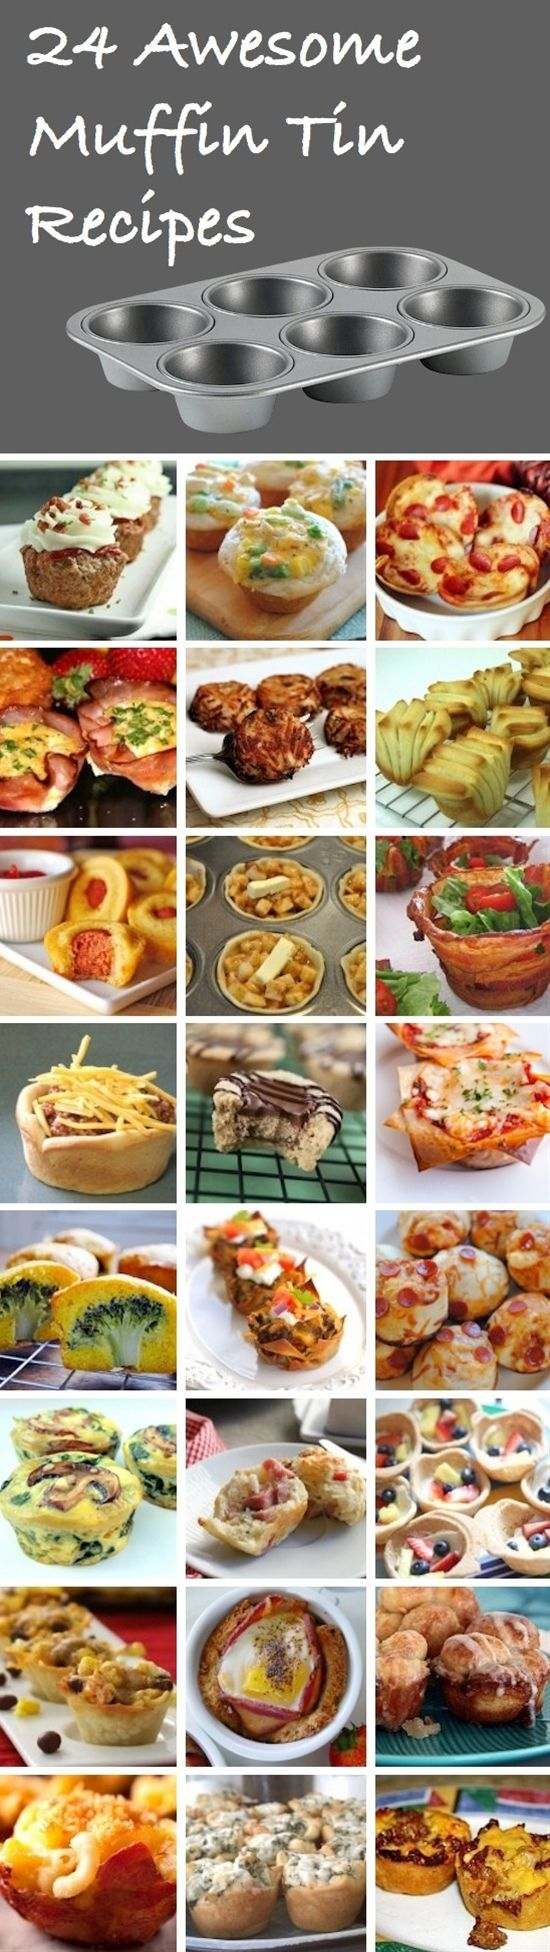 Muffin Tin Recipes